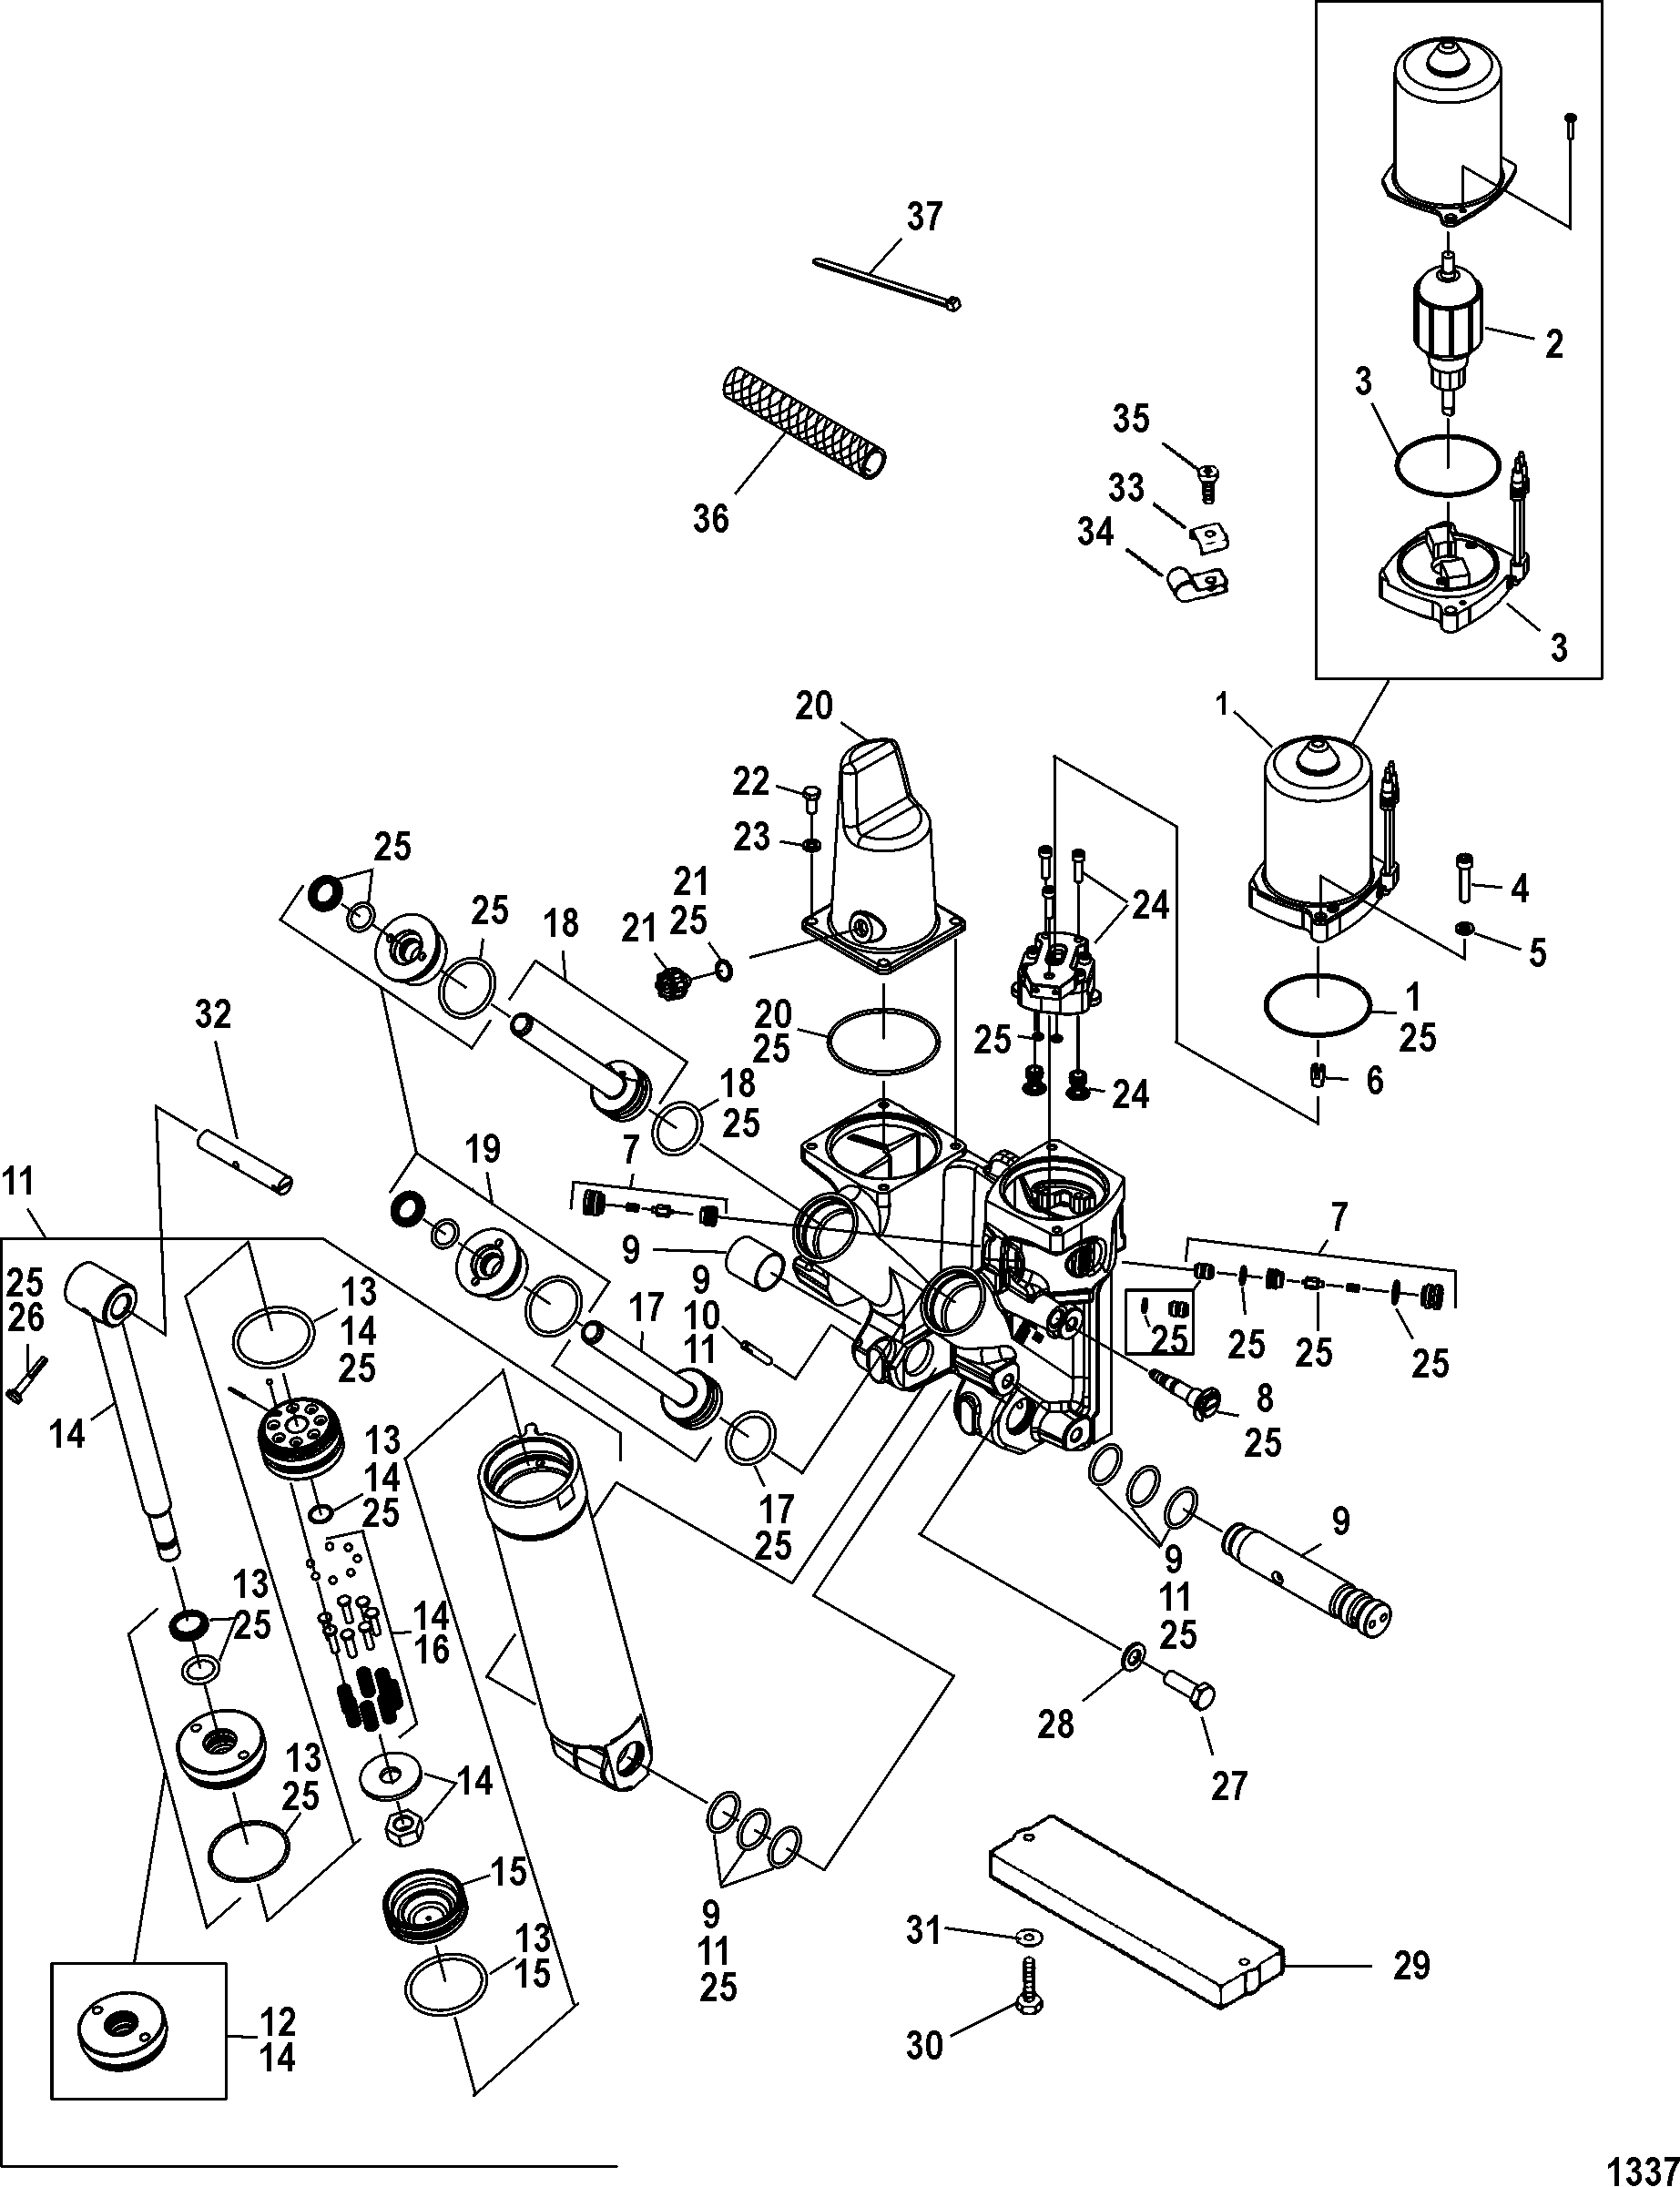 Power Trim Components For Mercury 250 Pro Xs 3 0l